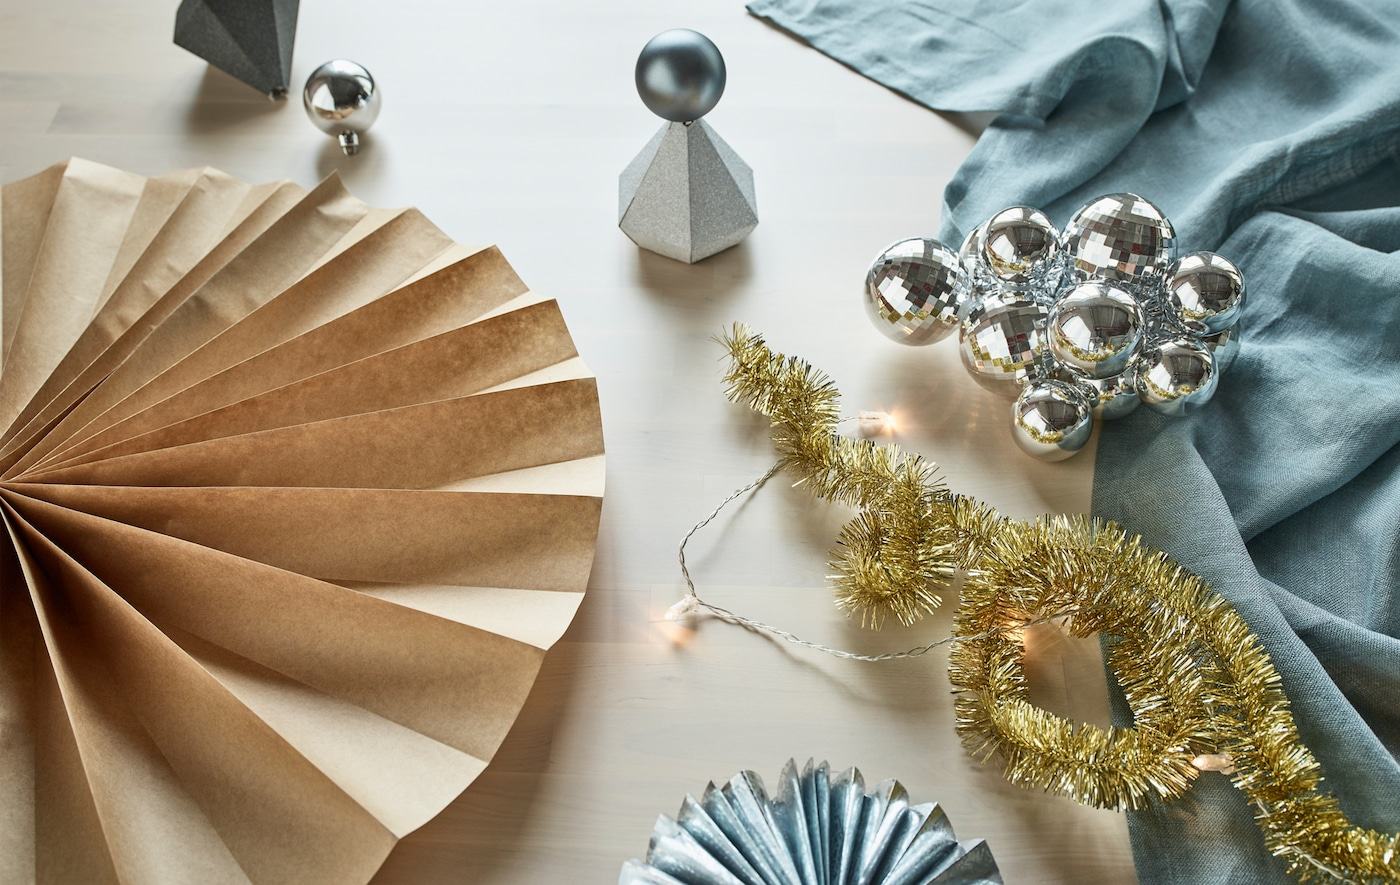 You can make recycled party decorations from IKEA holiday products like VINTER 2017 gold garland, silver gift boxes and baubles and wrapping paper. Turn them into wall decor, table toppers and paper rosettes.